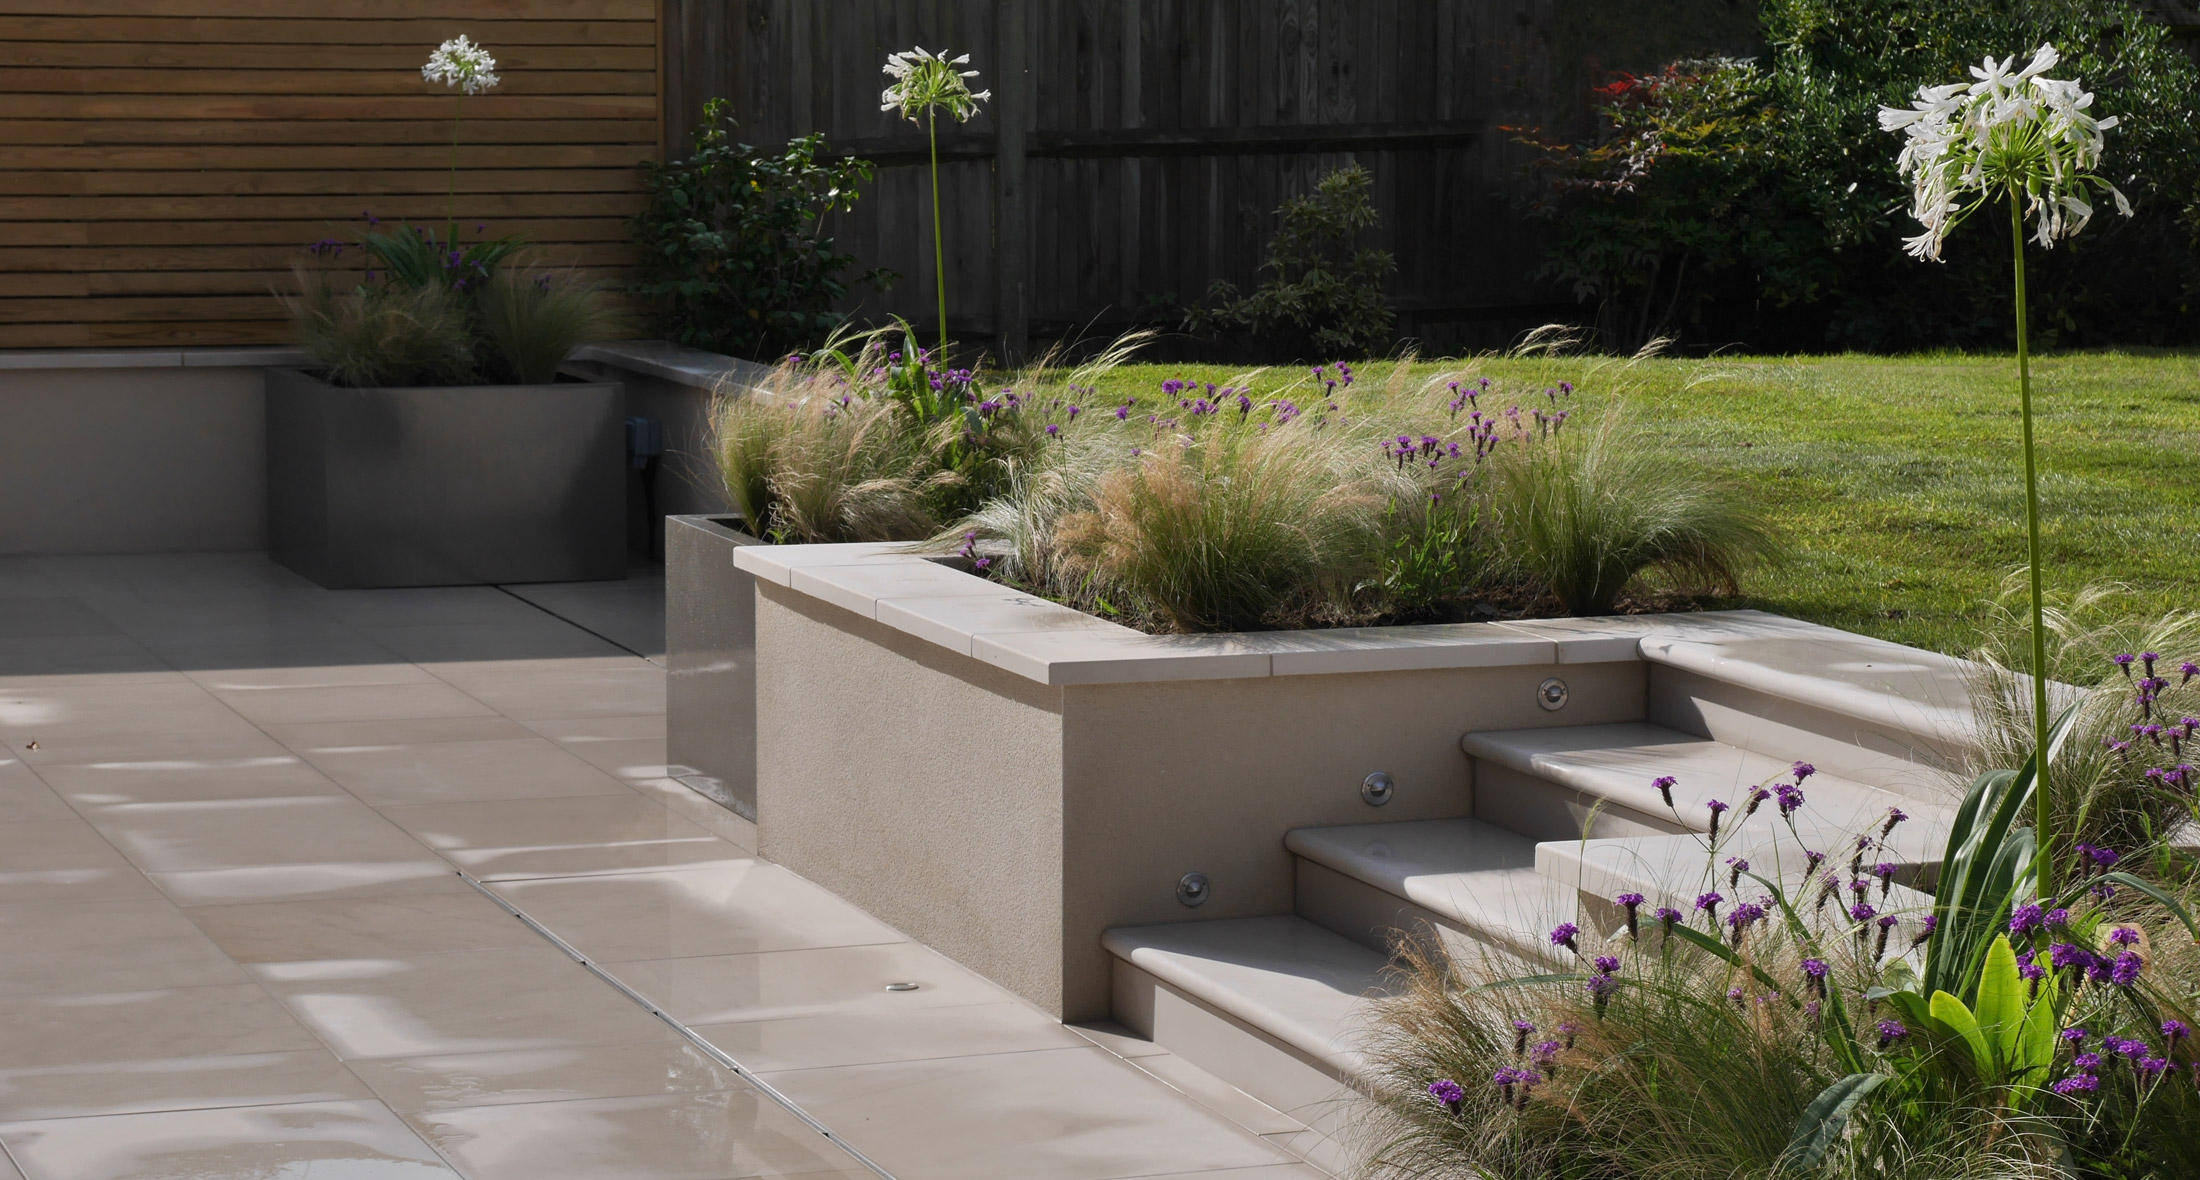 a slate grey garden design landscaping patio showing raised edging and containers